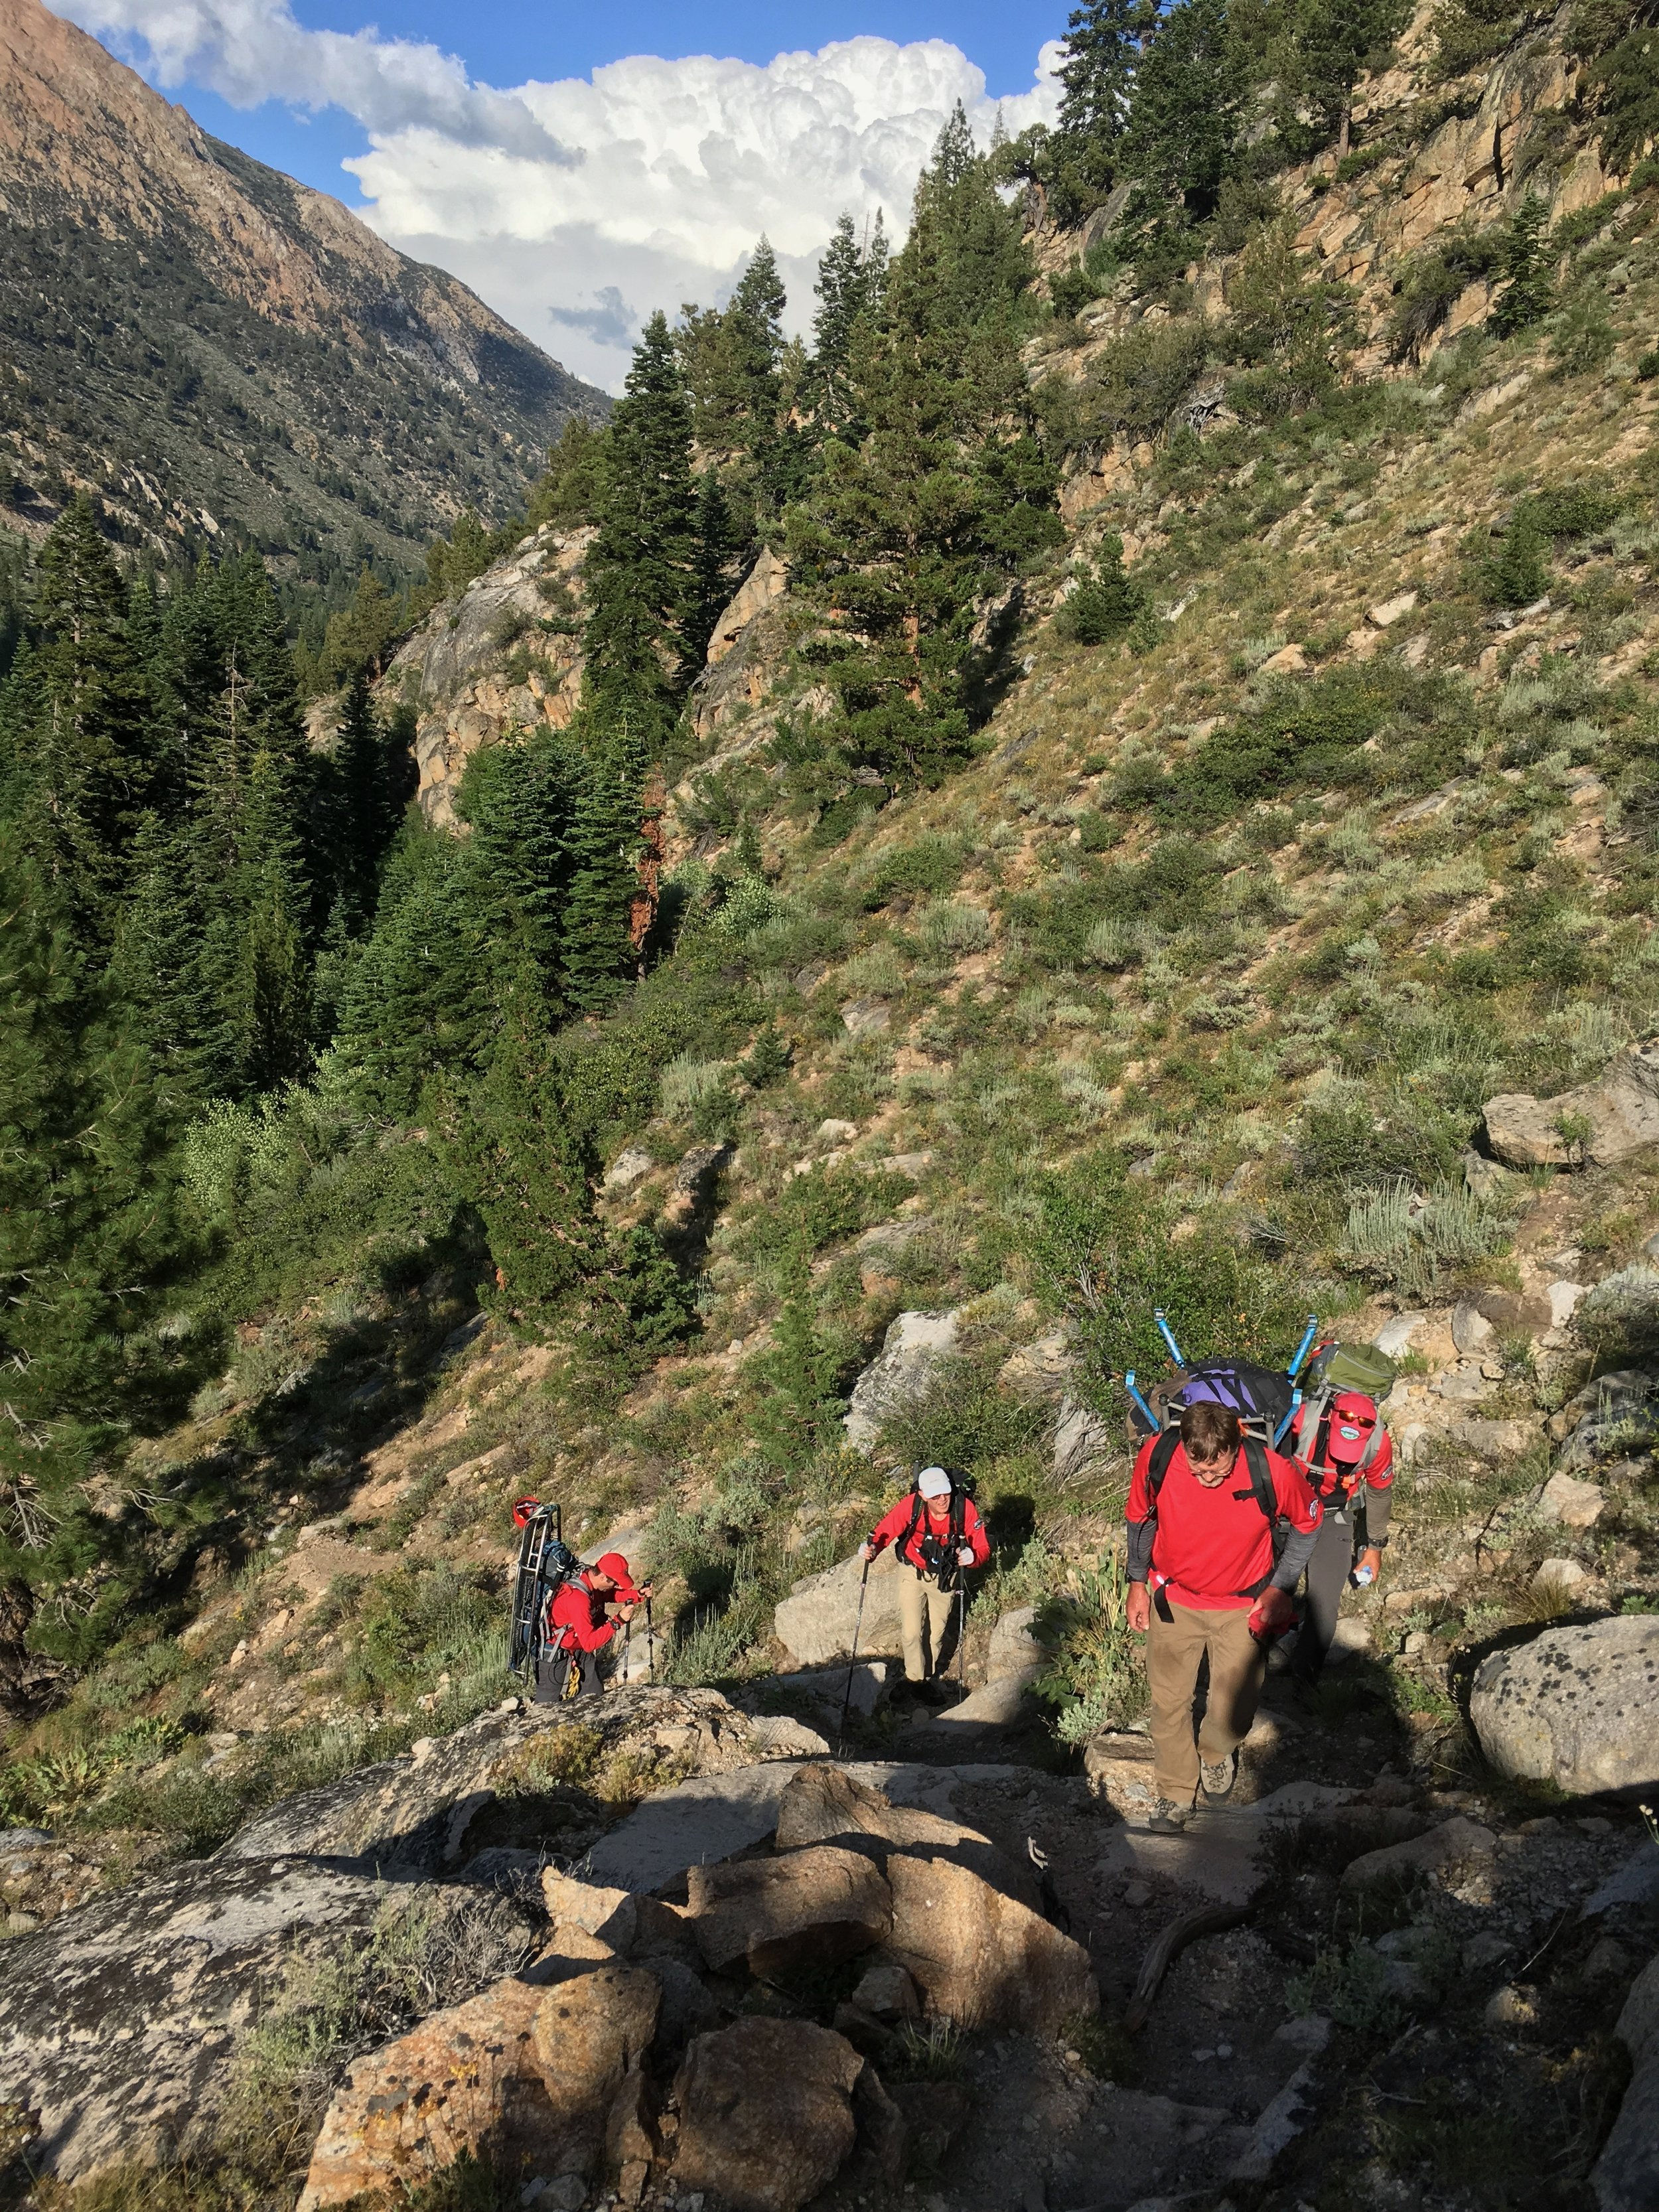 Hiking on the use trail in Little Slide Canyon. Image by M. Quiring